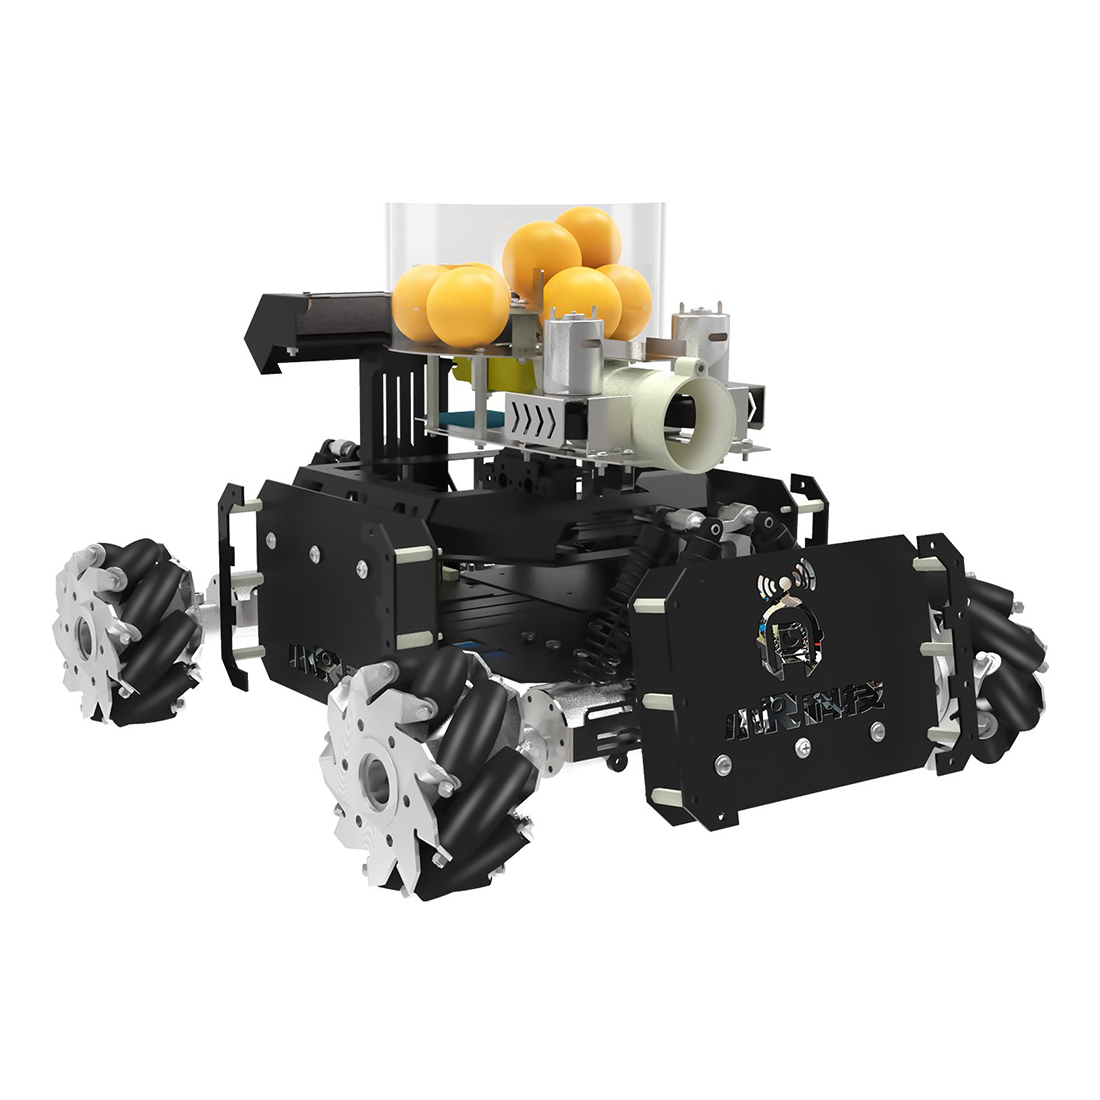 DIY Steam Omni Wheel Turret Chariot VR Video Control XR Master Robot For STM32 Children Developmental Educational Toys - Black